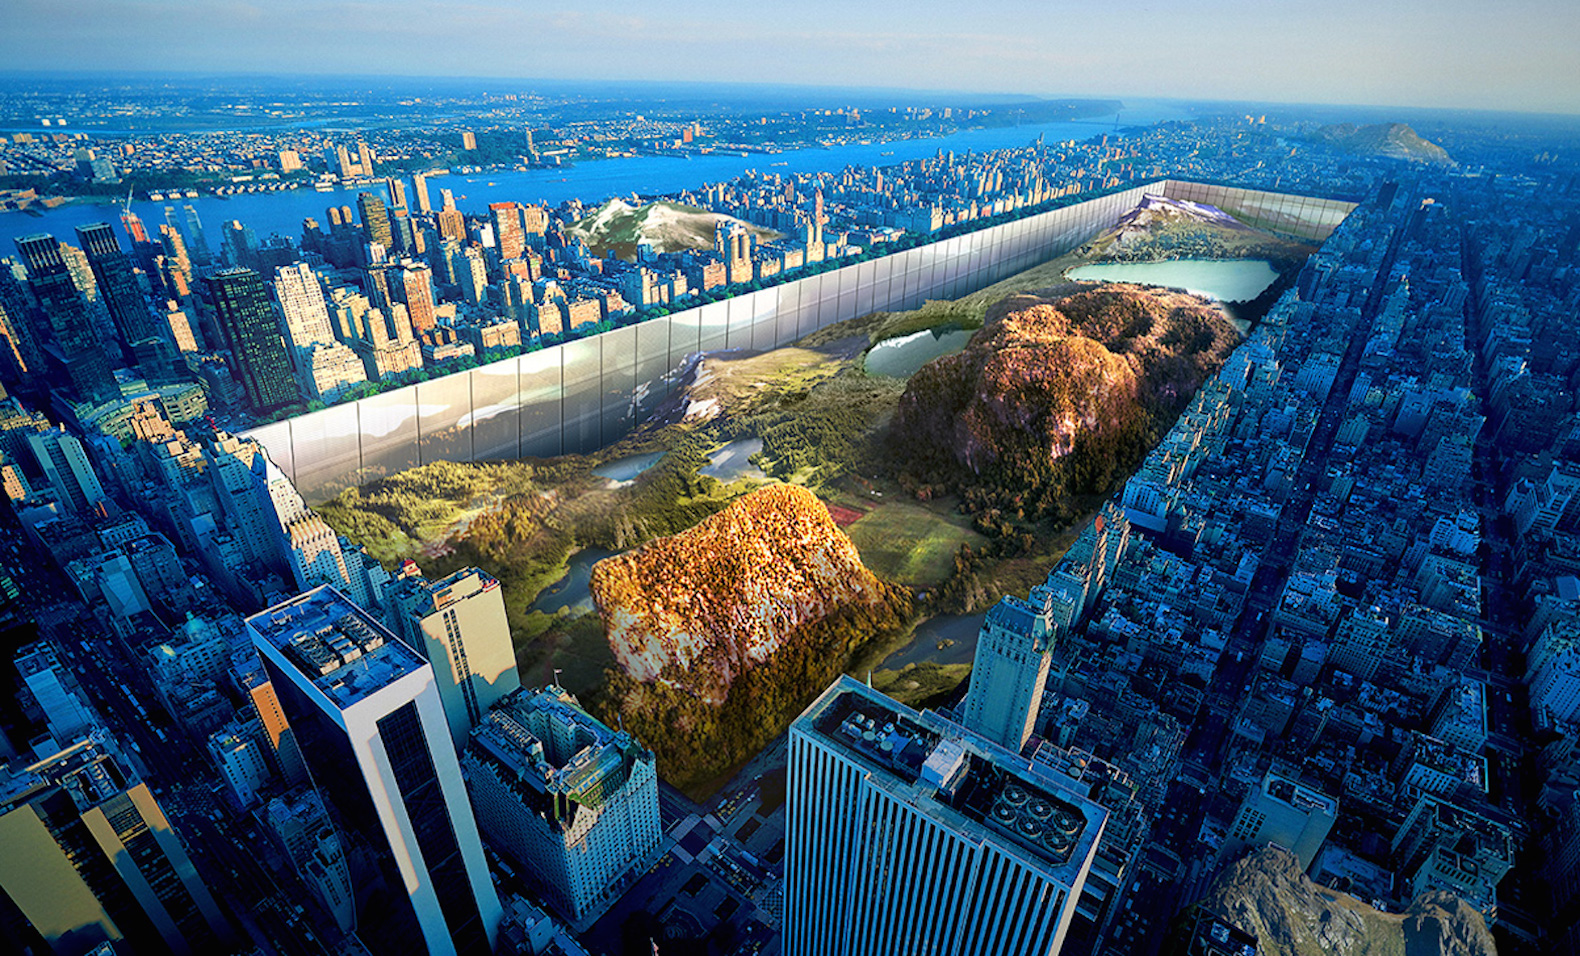 Crazy proposal exposes Central Park's underground mountains and surrounds it with 1,000-foot glass walls